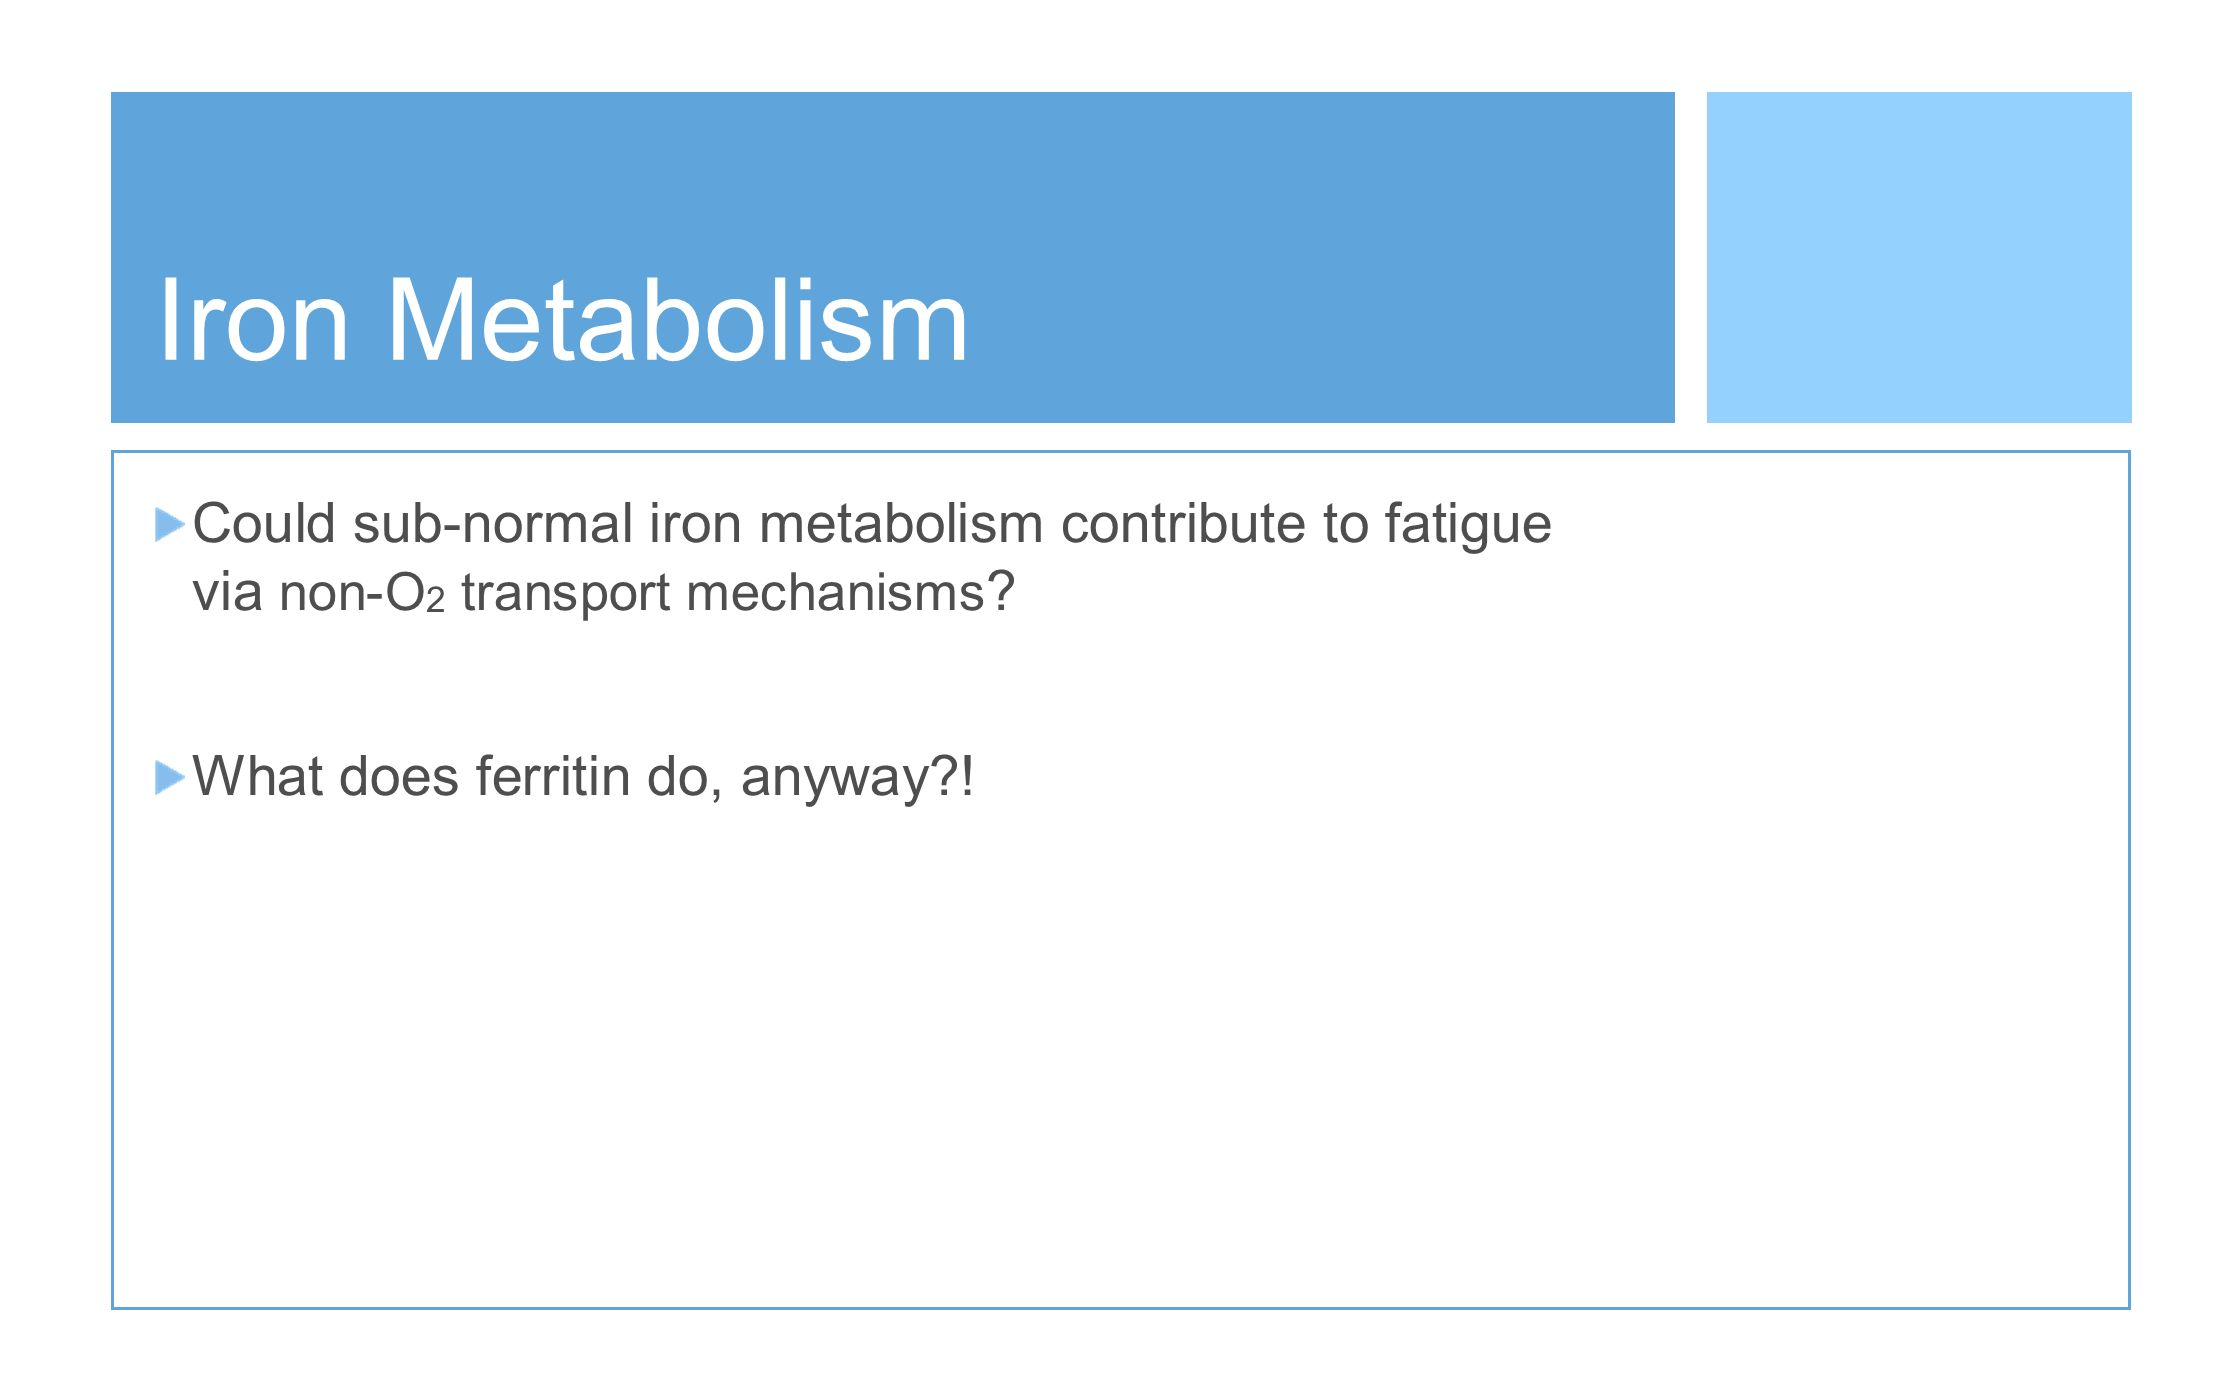 Iron Metabolism But that is just from an O2 transport view, perhaps there is another linkage between ferritin and subjective sense of fatigue